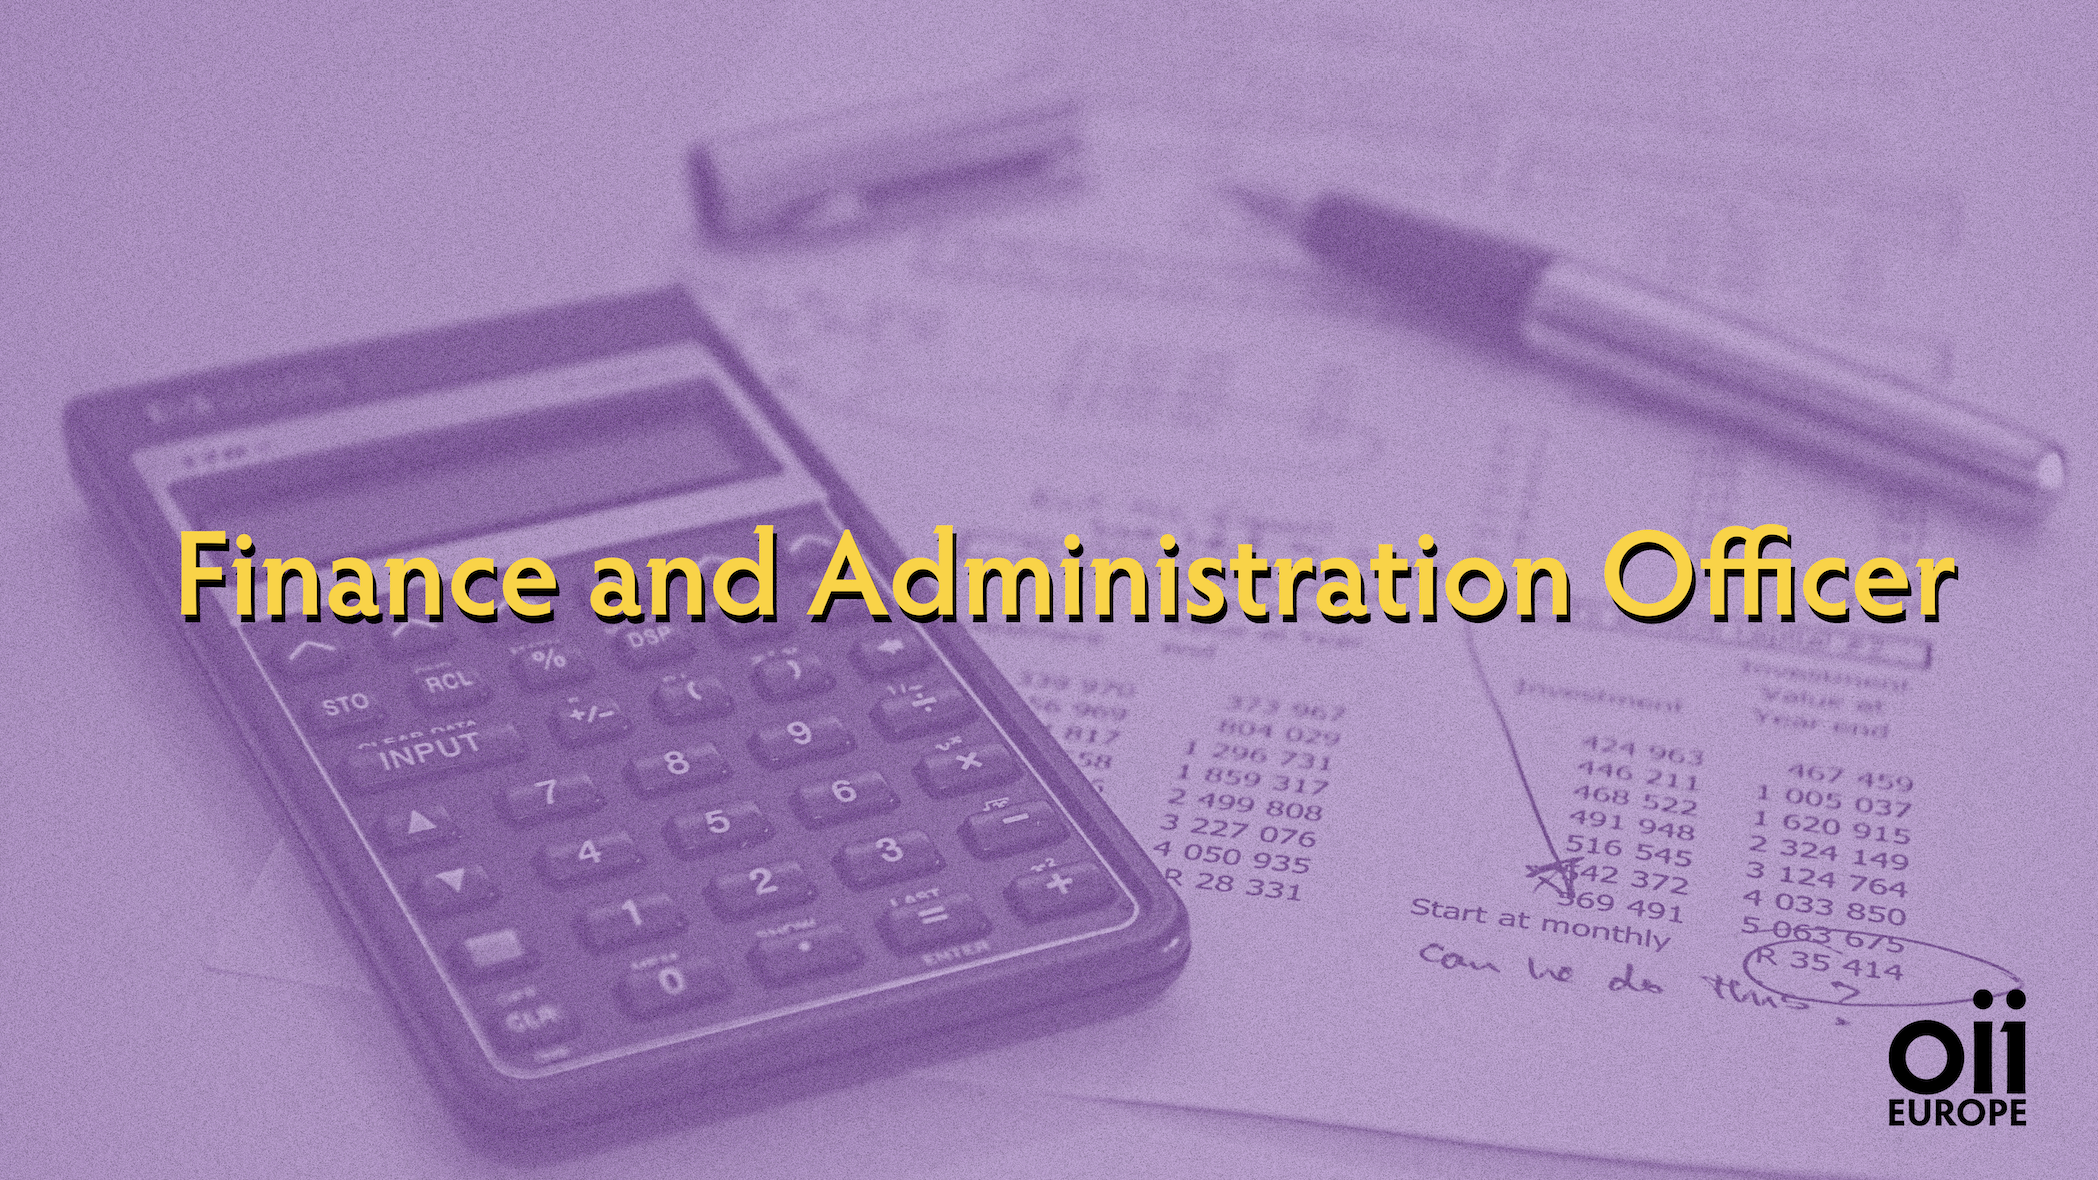 Call for the position of Finance and Administration Officer